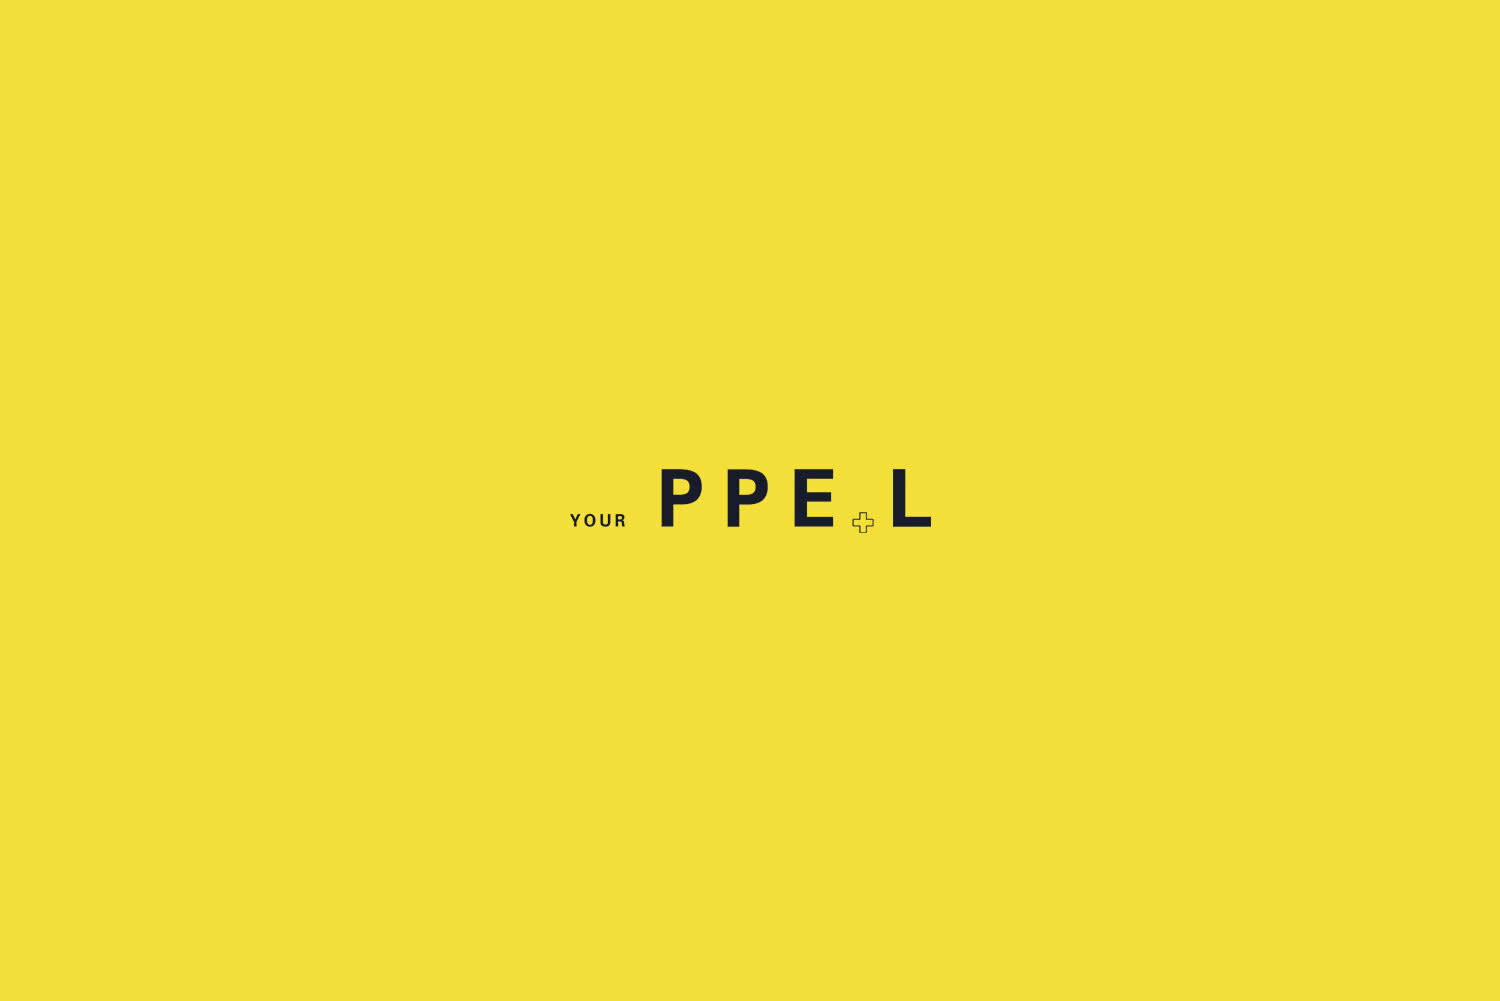 Your PPE + L